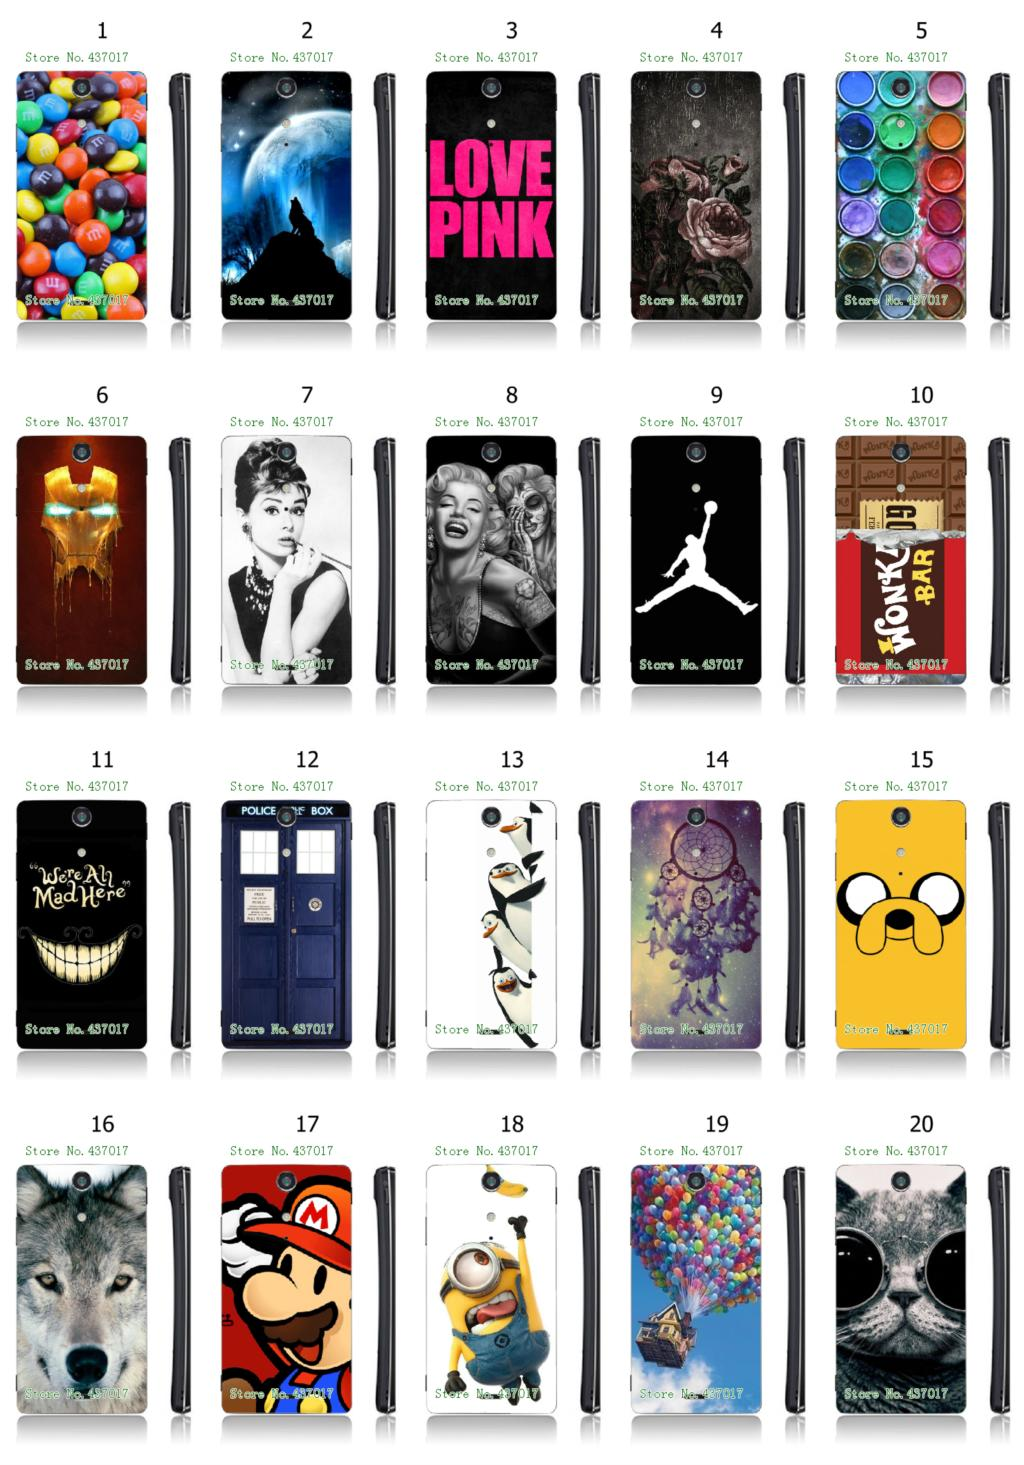 2015 new michael jordan iron man despicable me white hard cases for sony xperia tx lt29i + free shipping(China (Mainland))